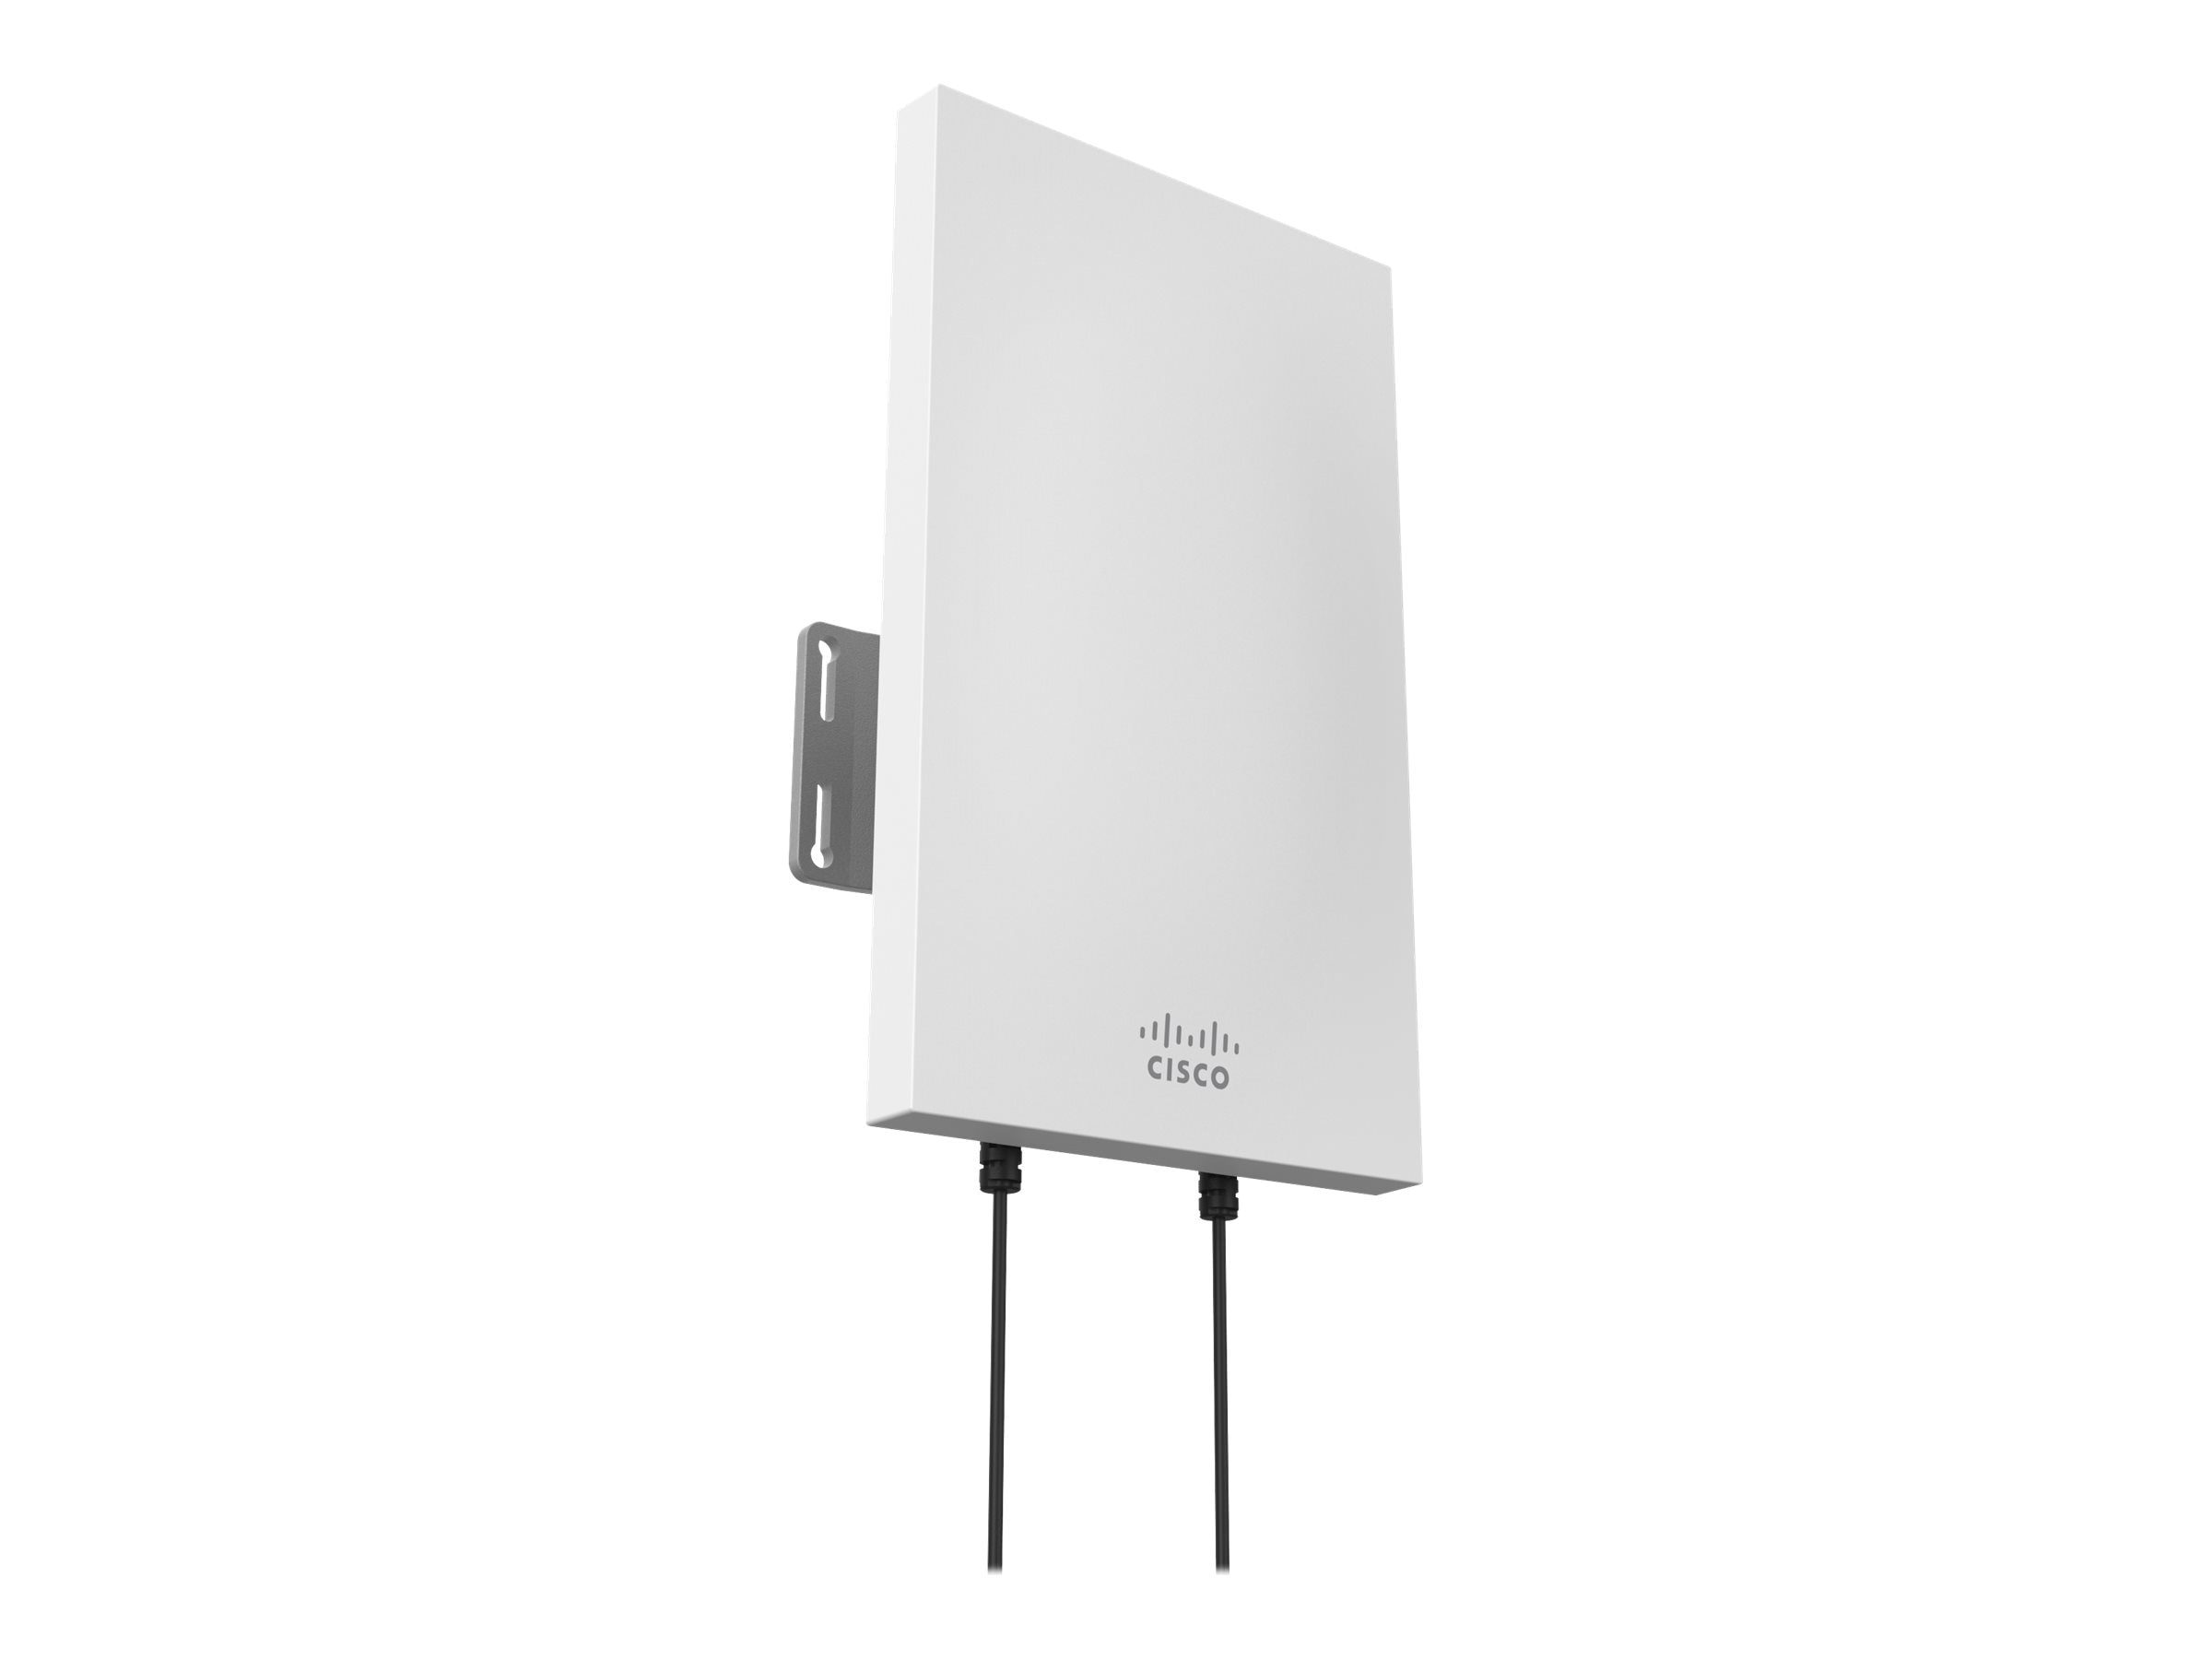 Cisco Meraki 2.4GHZ Sector Antenna, MA-ANT-23